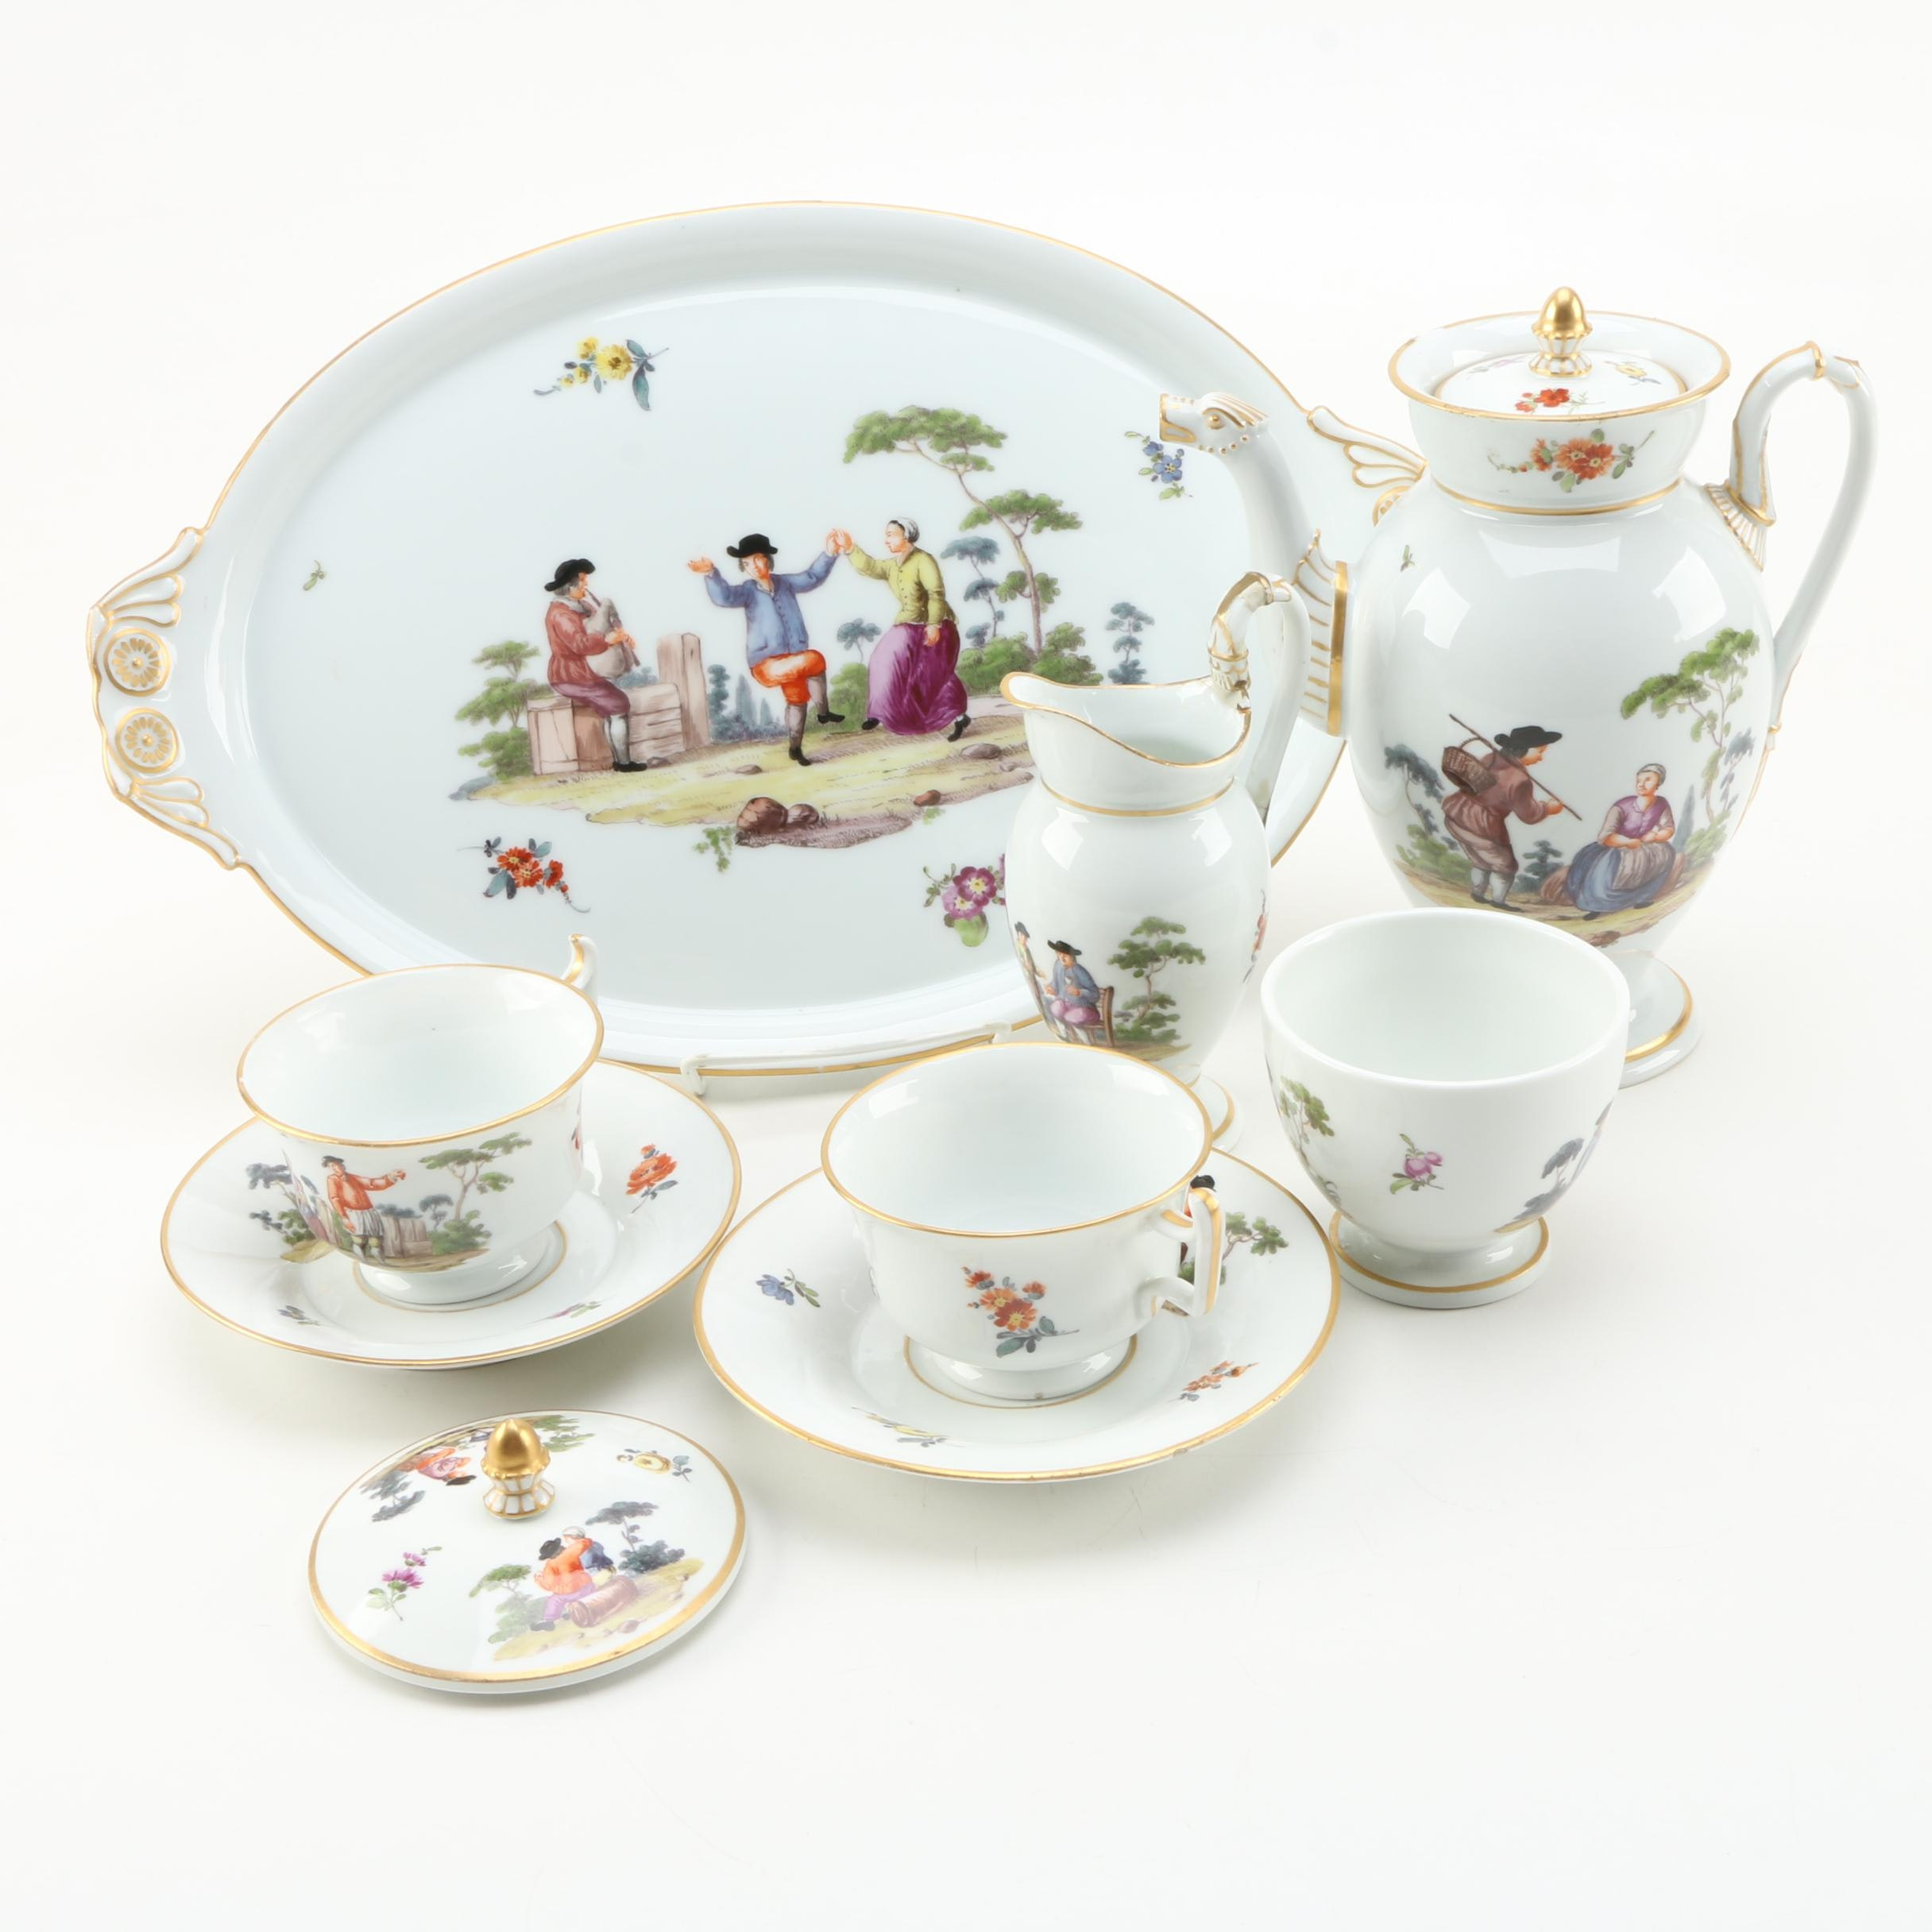 19th Century Meissen Porcelain Tableware